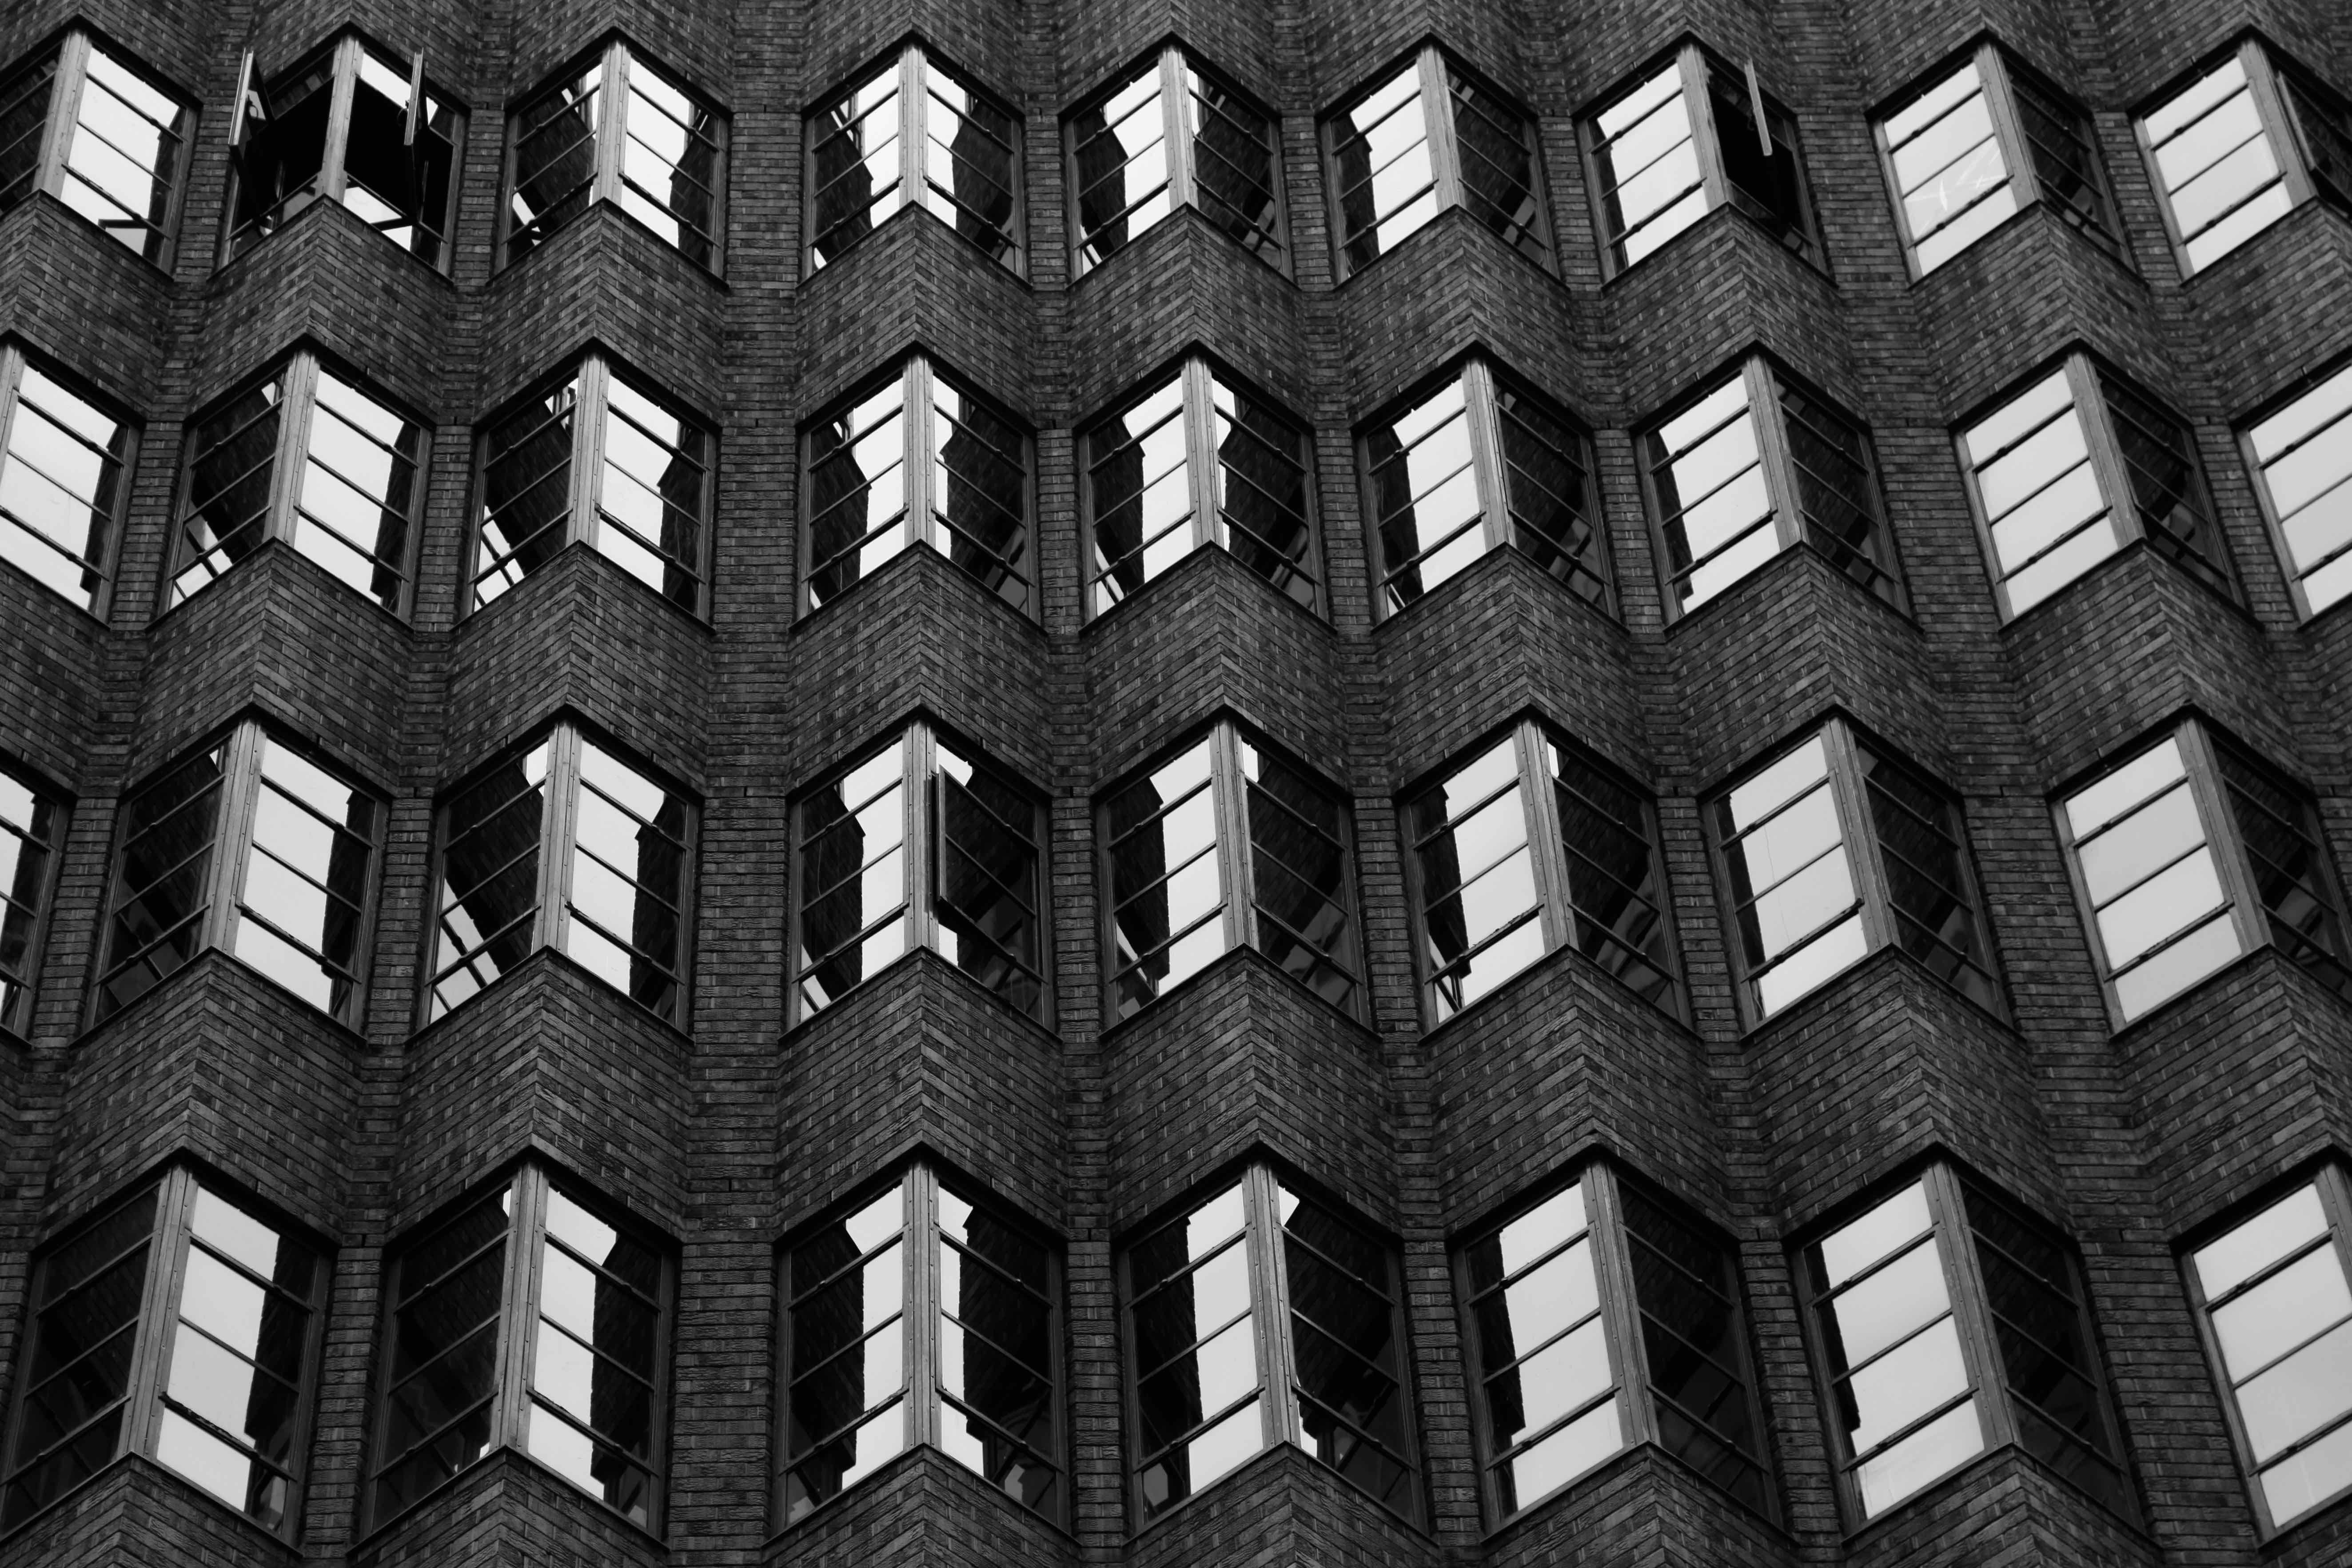 Black and white shot of jagged wall architecture with windows in Pitt Street